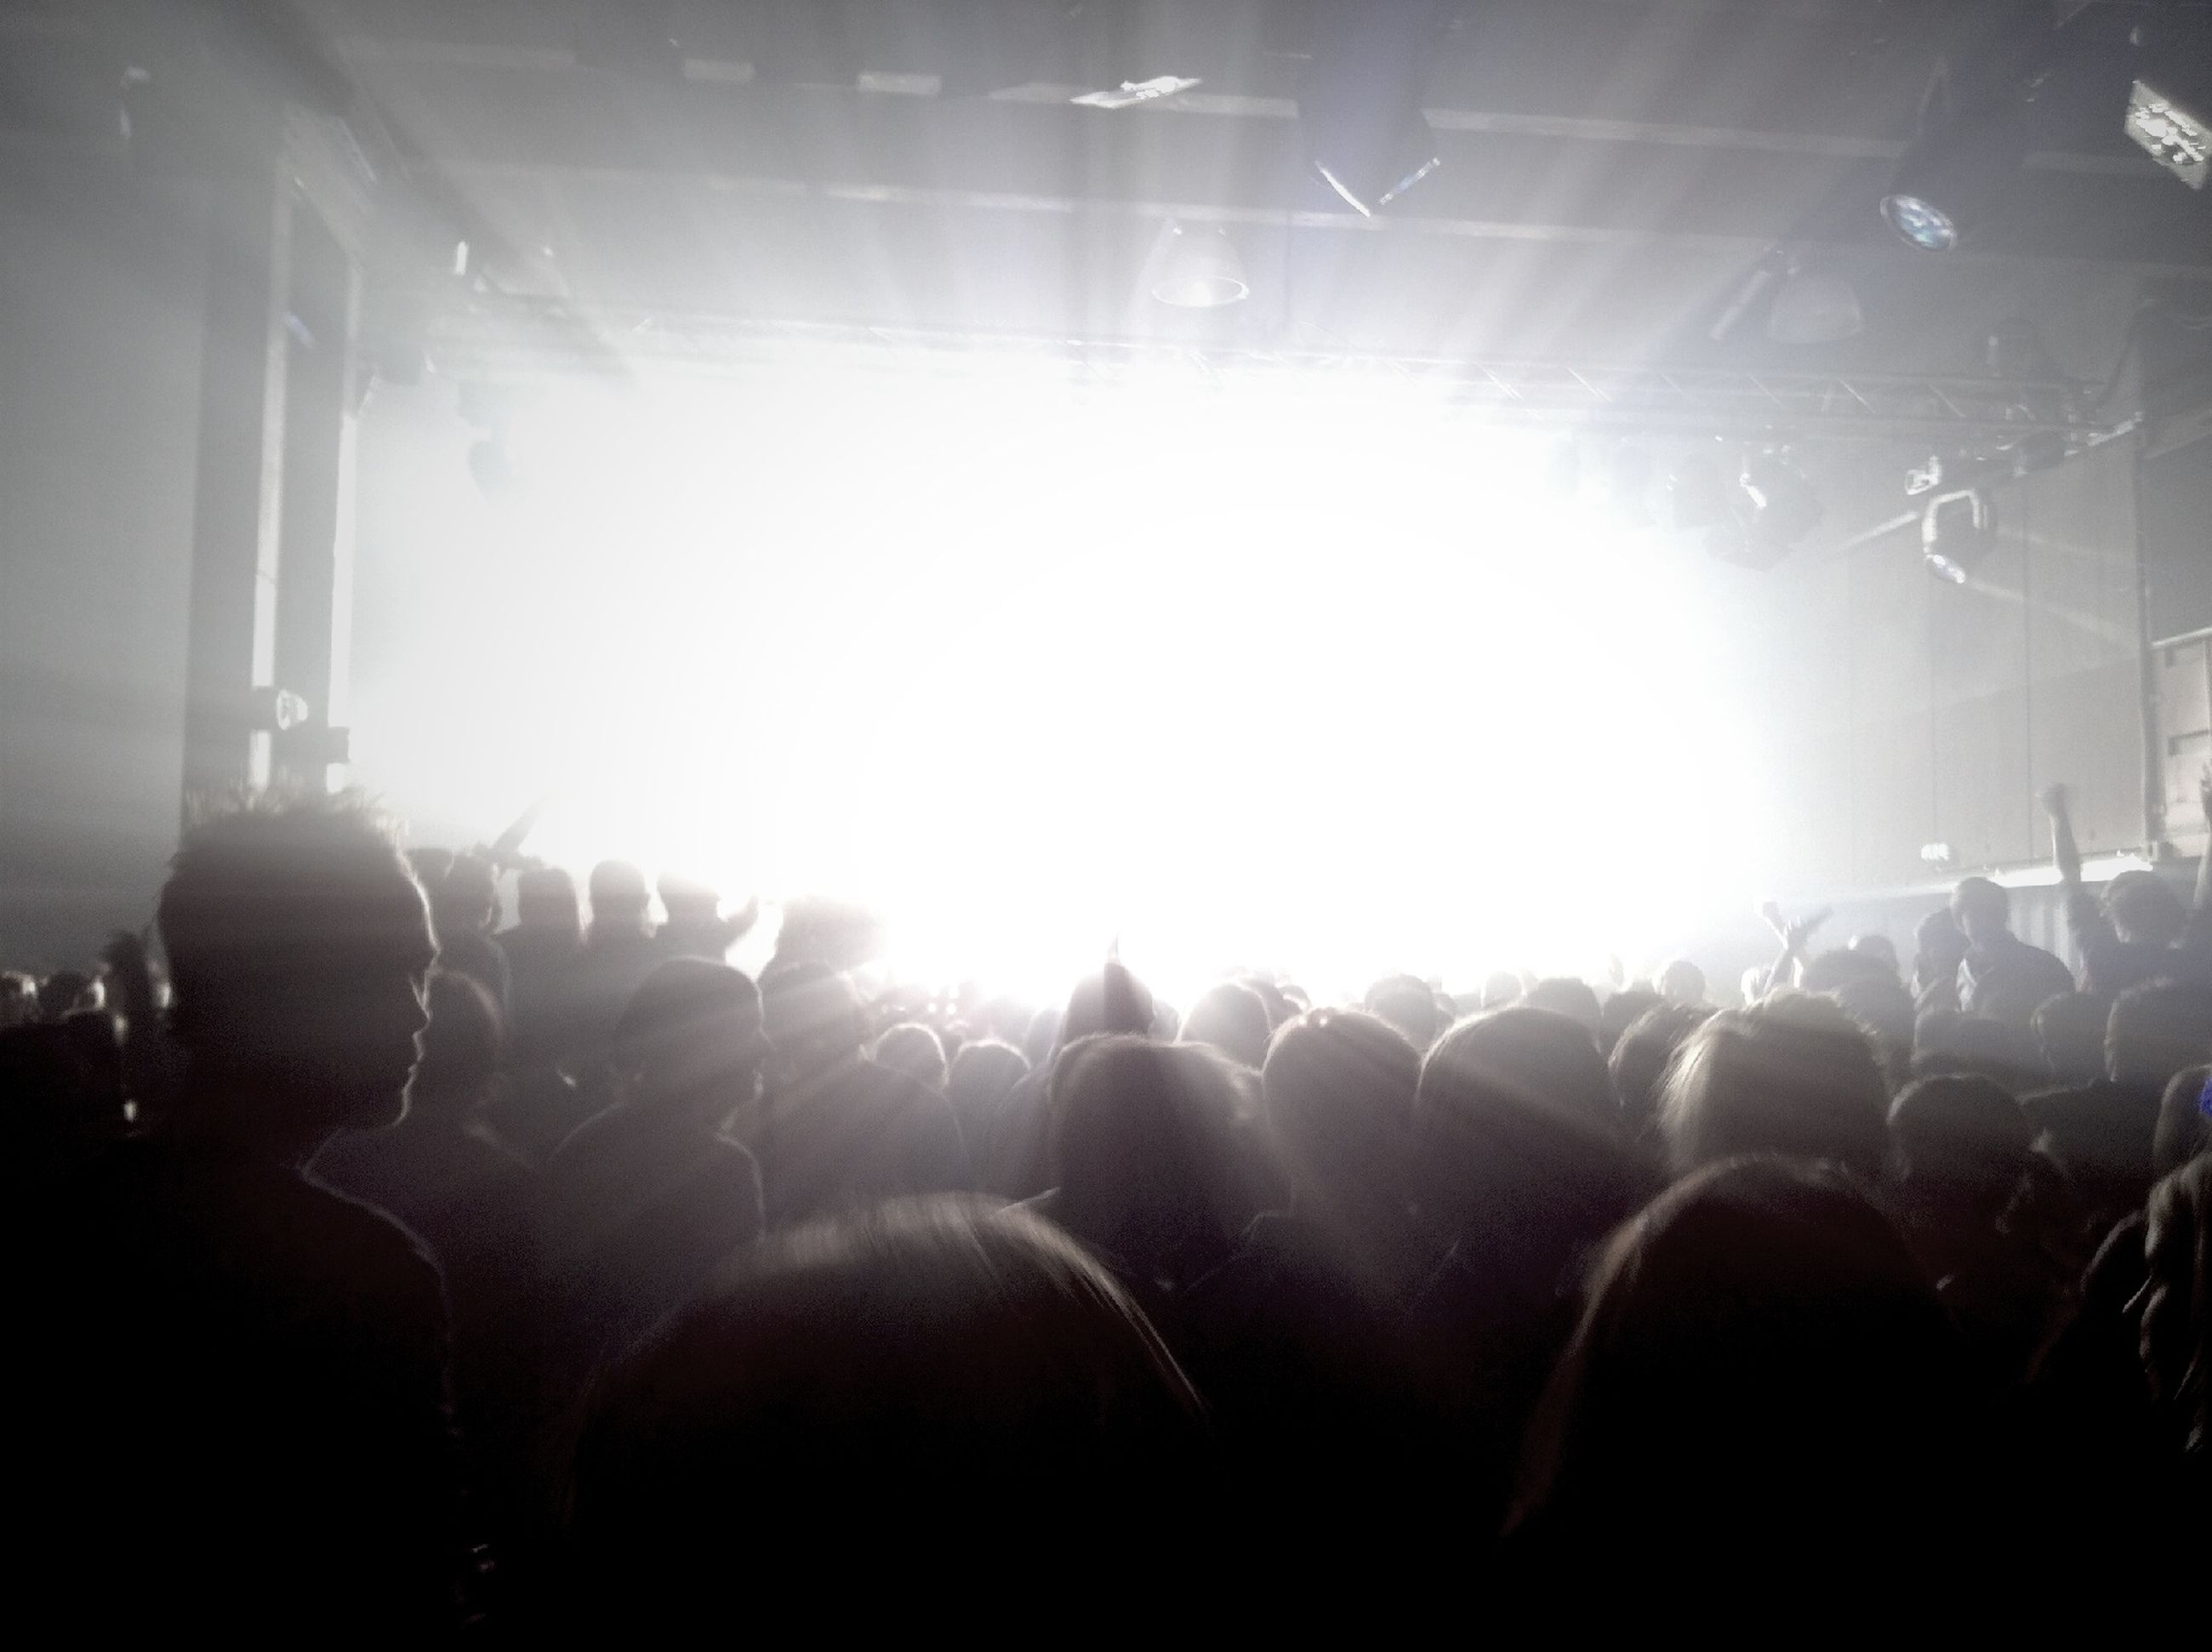 lifestyles, leisure activity, lens flare, large group of people, sunbeam, men, sun, person, sunlight, enjoyment, indoors, togetherness, crowd, fun, brightly lit, silhouette, bright, back lit, light - natural phenomenon